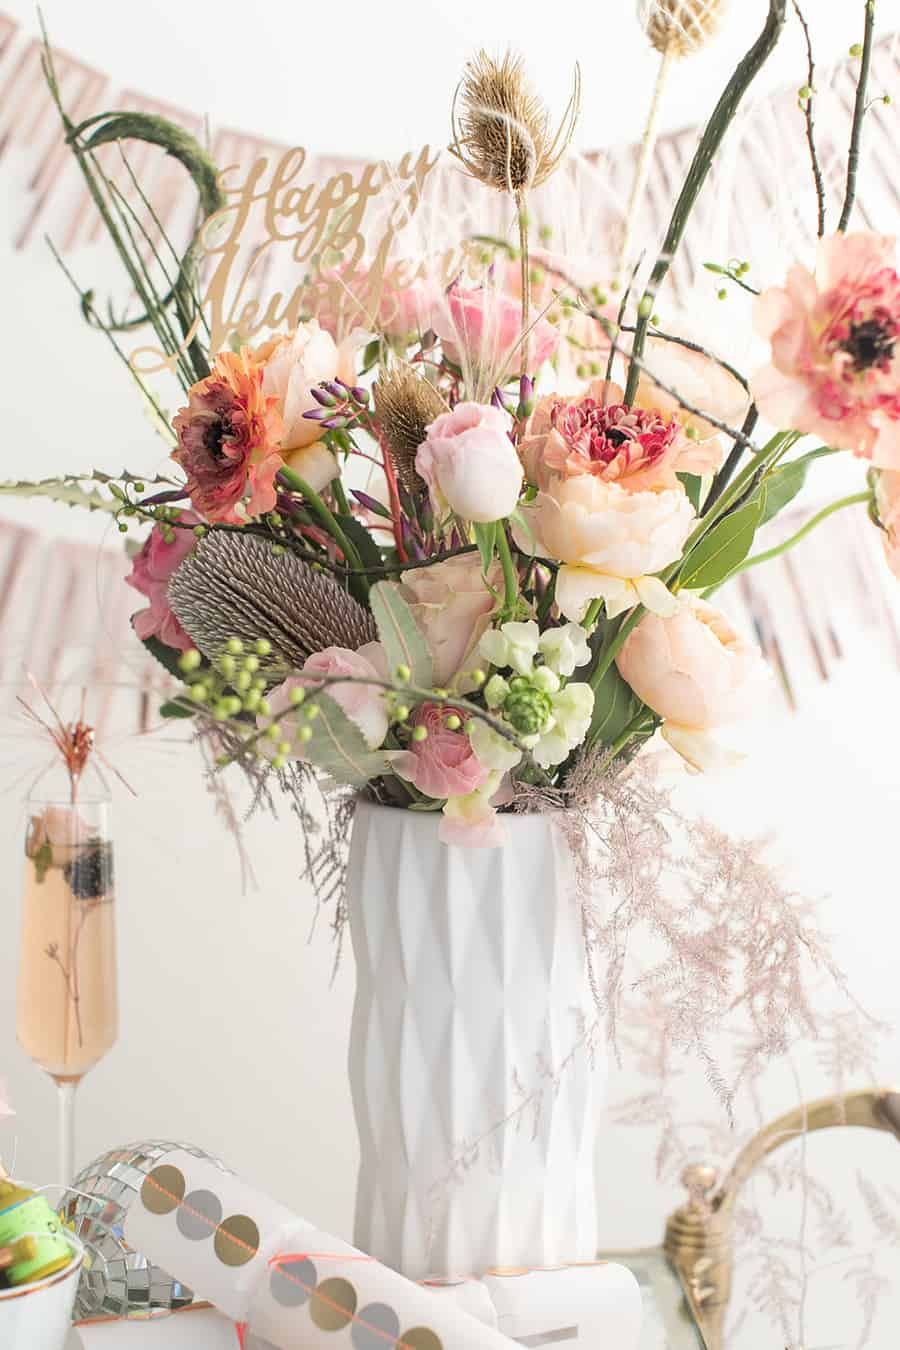 Flowers for New Year's Eve in a white vase